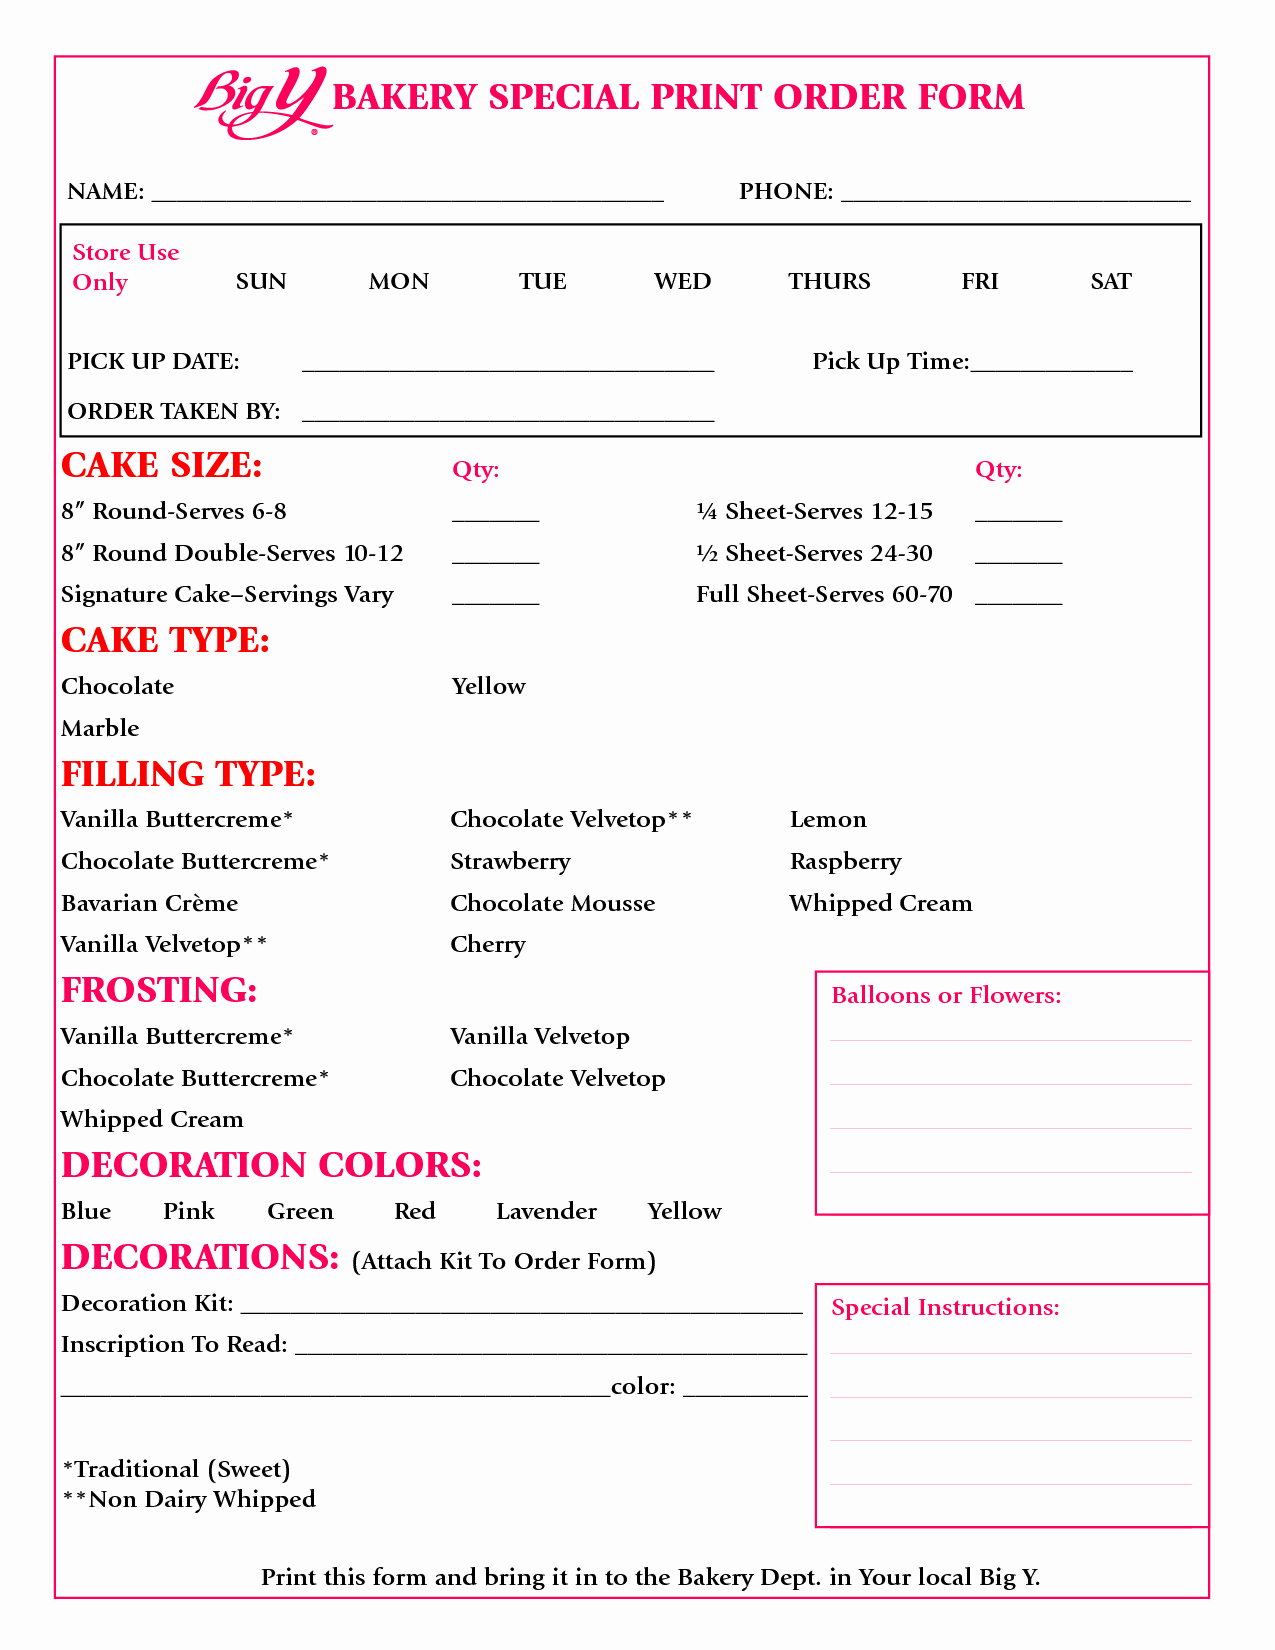 Cake order form Template Beautiful Cake order form Google Search